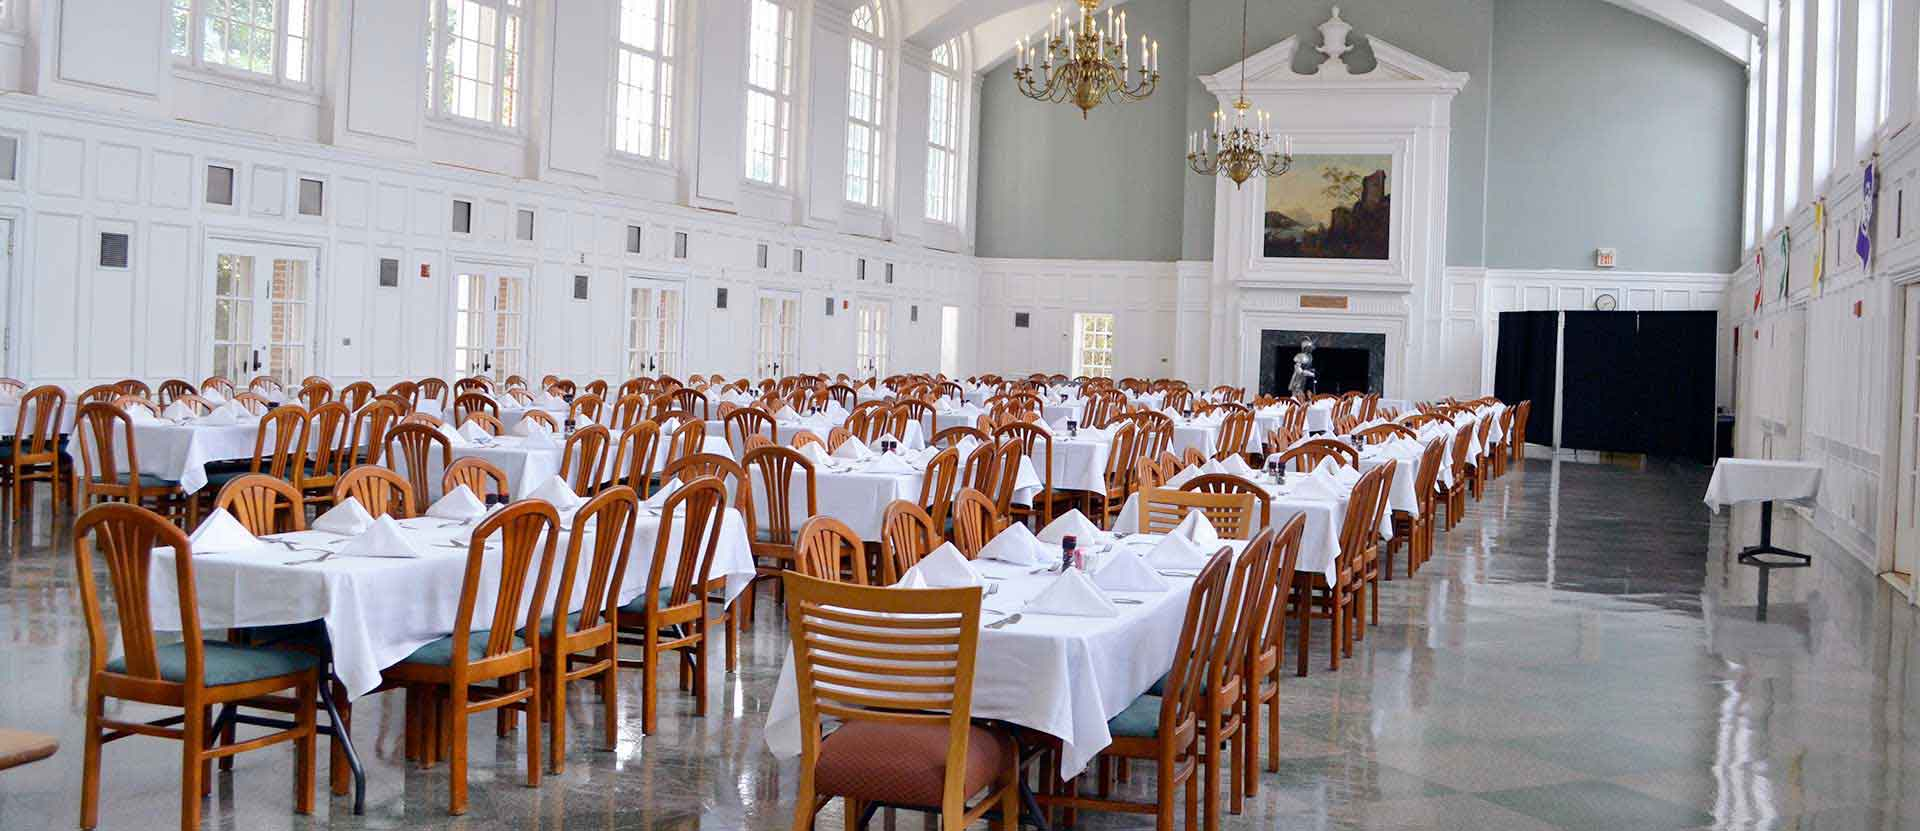 Dining Hall with chandeliers and tablecloths on the tables